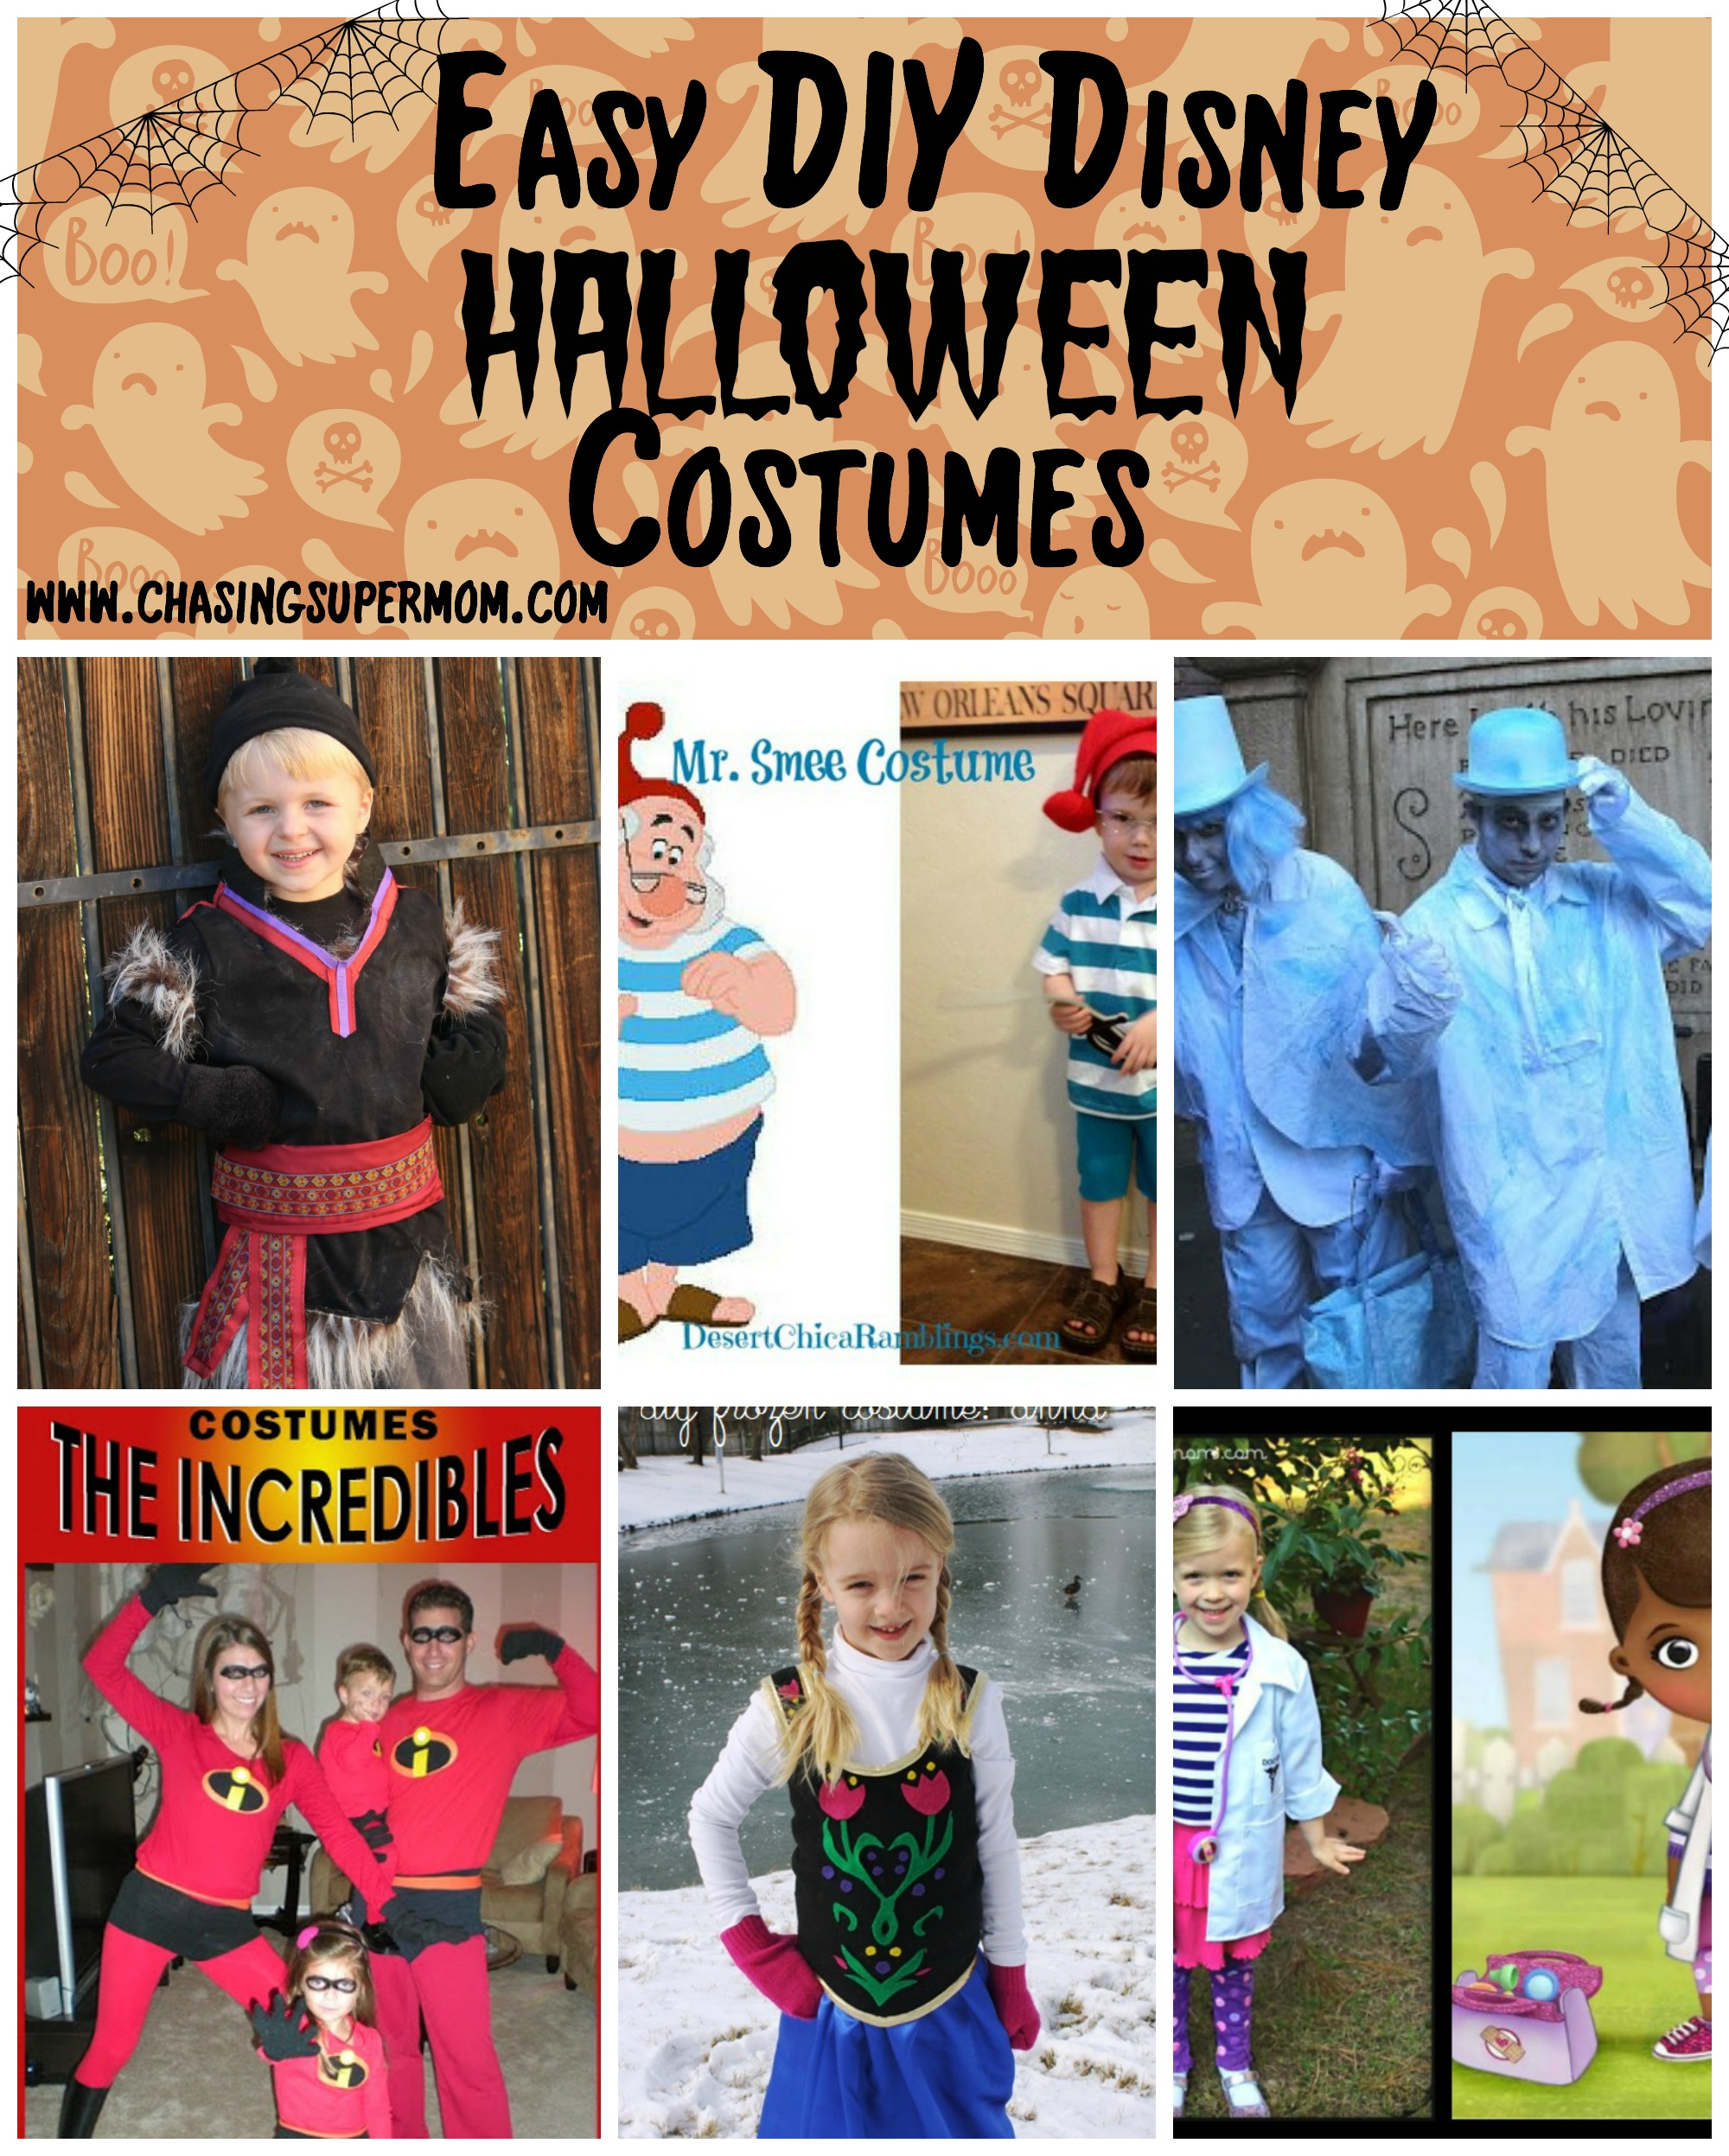 DIY Disney Halloween Costume Round-Up – EASY DIY Disney Costumes